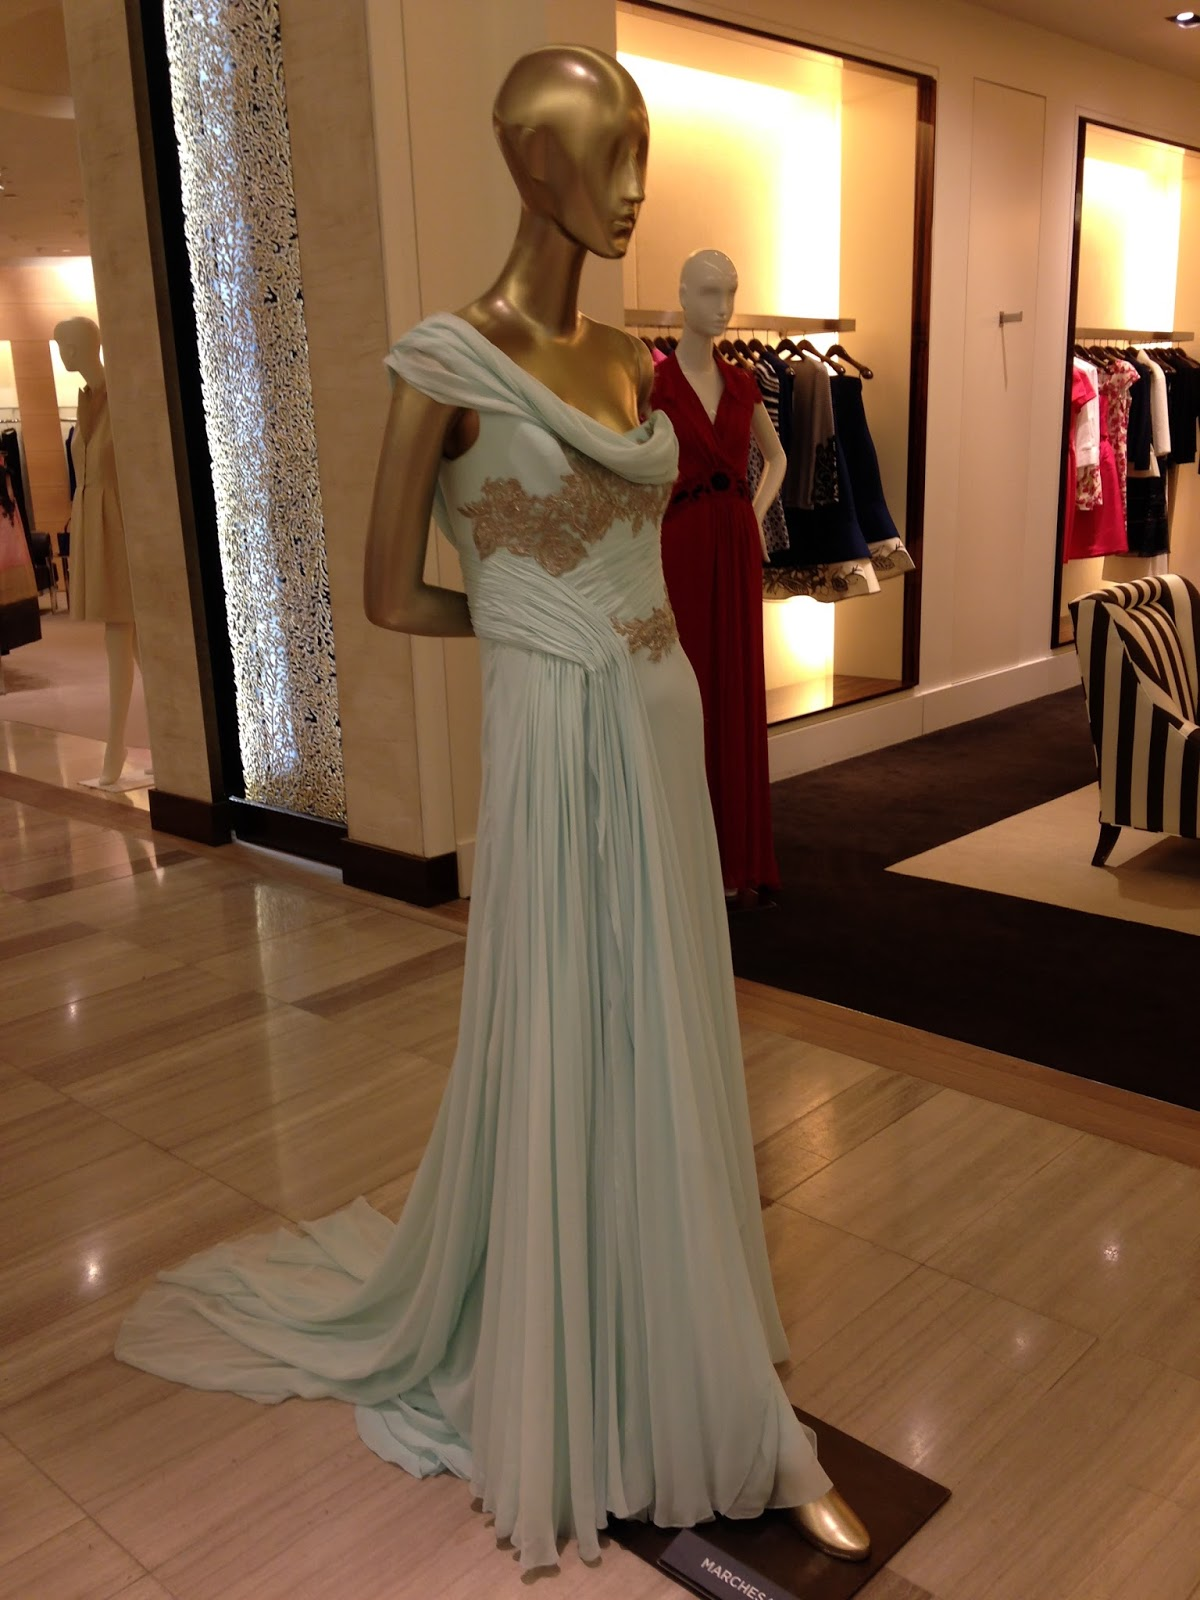 d31d6a0c3c8 Evening Wear Collections at Saks Fifth Avenue - One Style at a Time